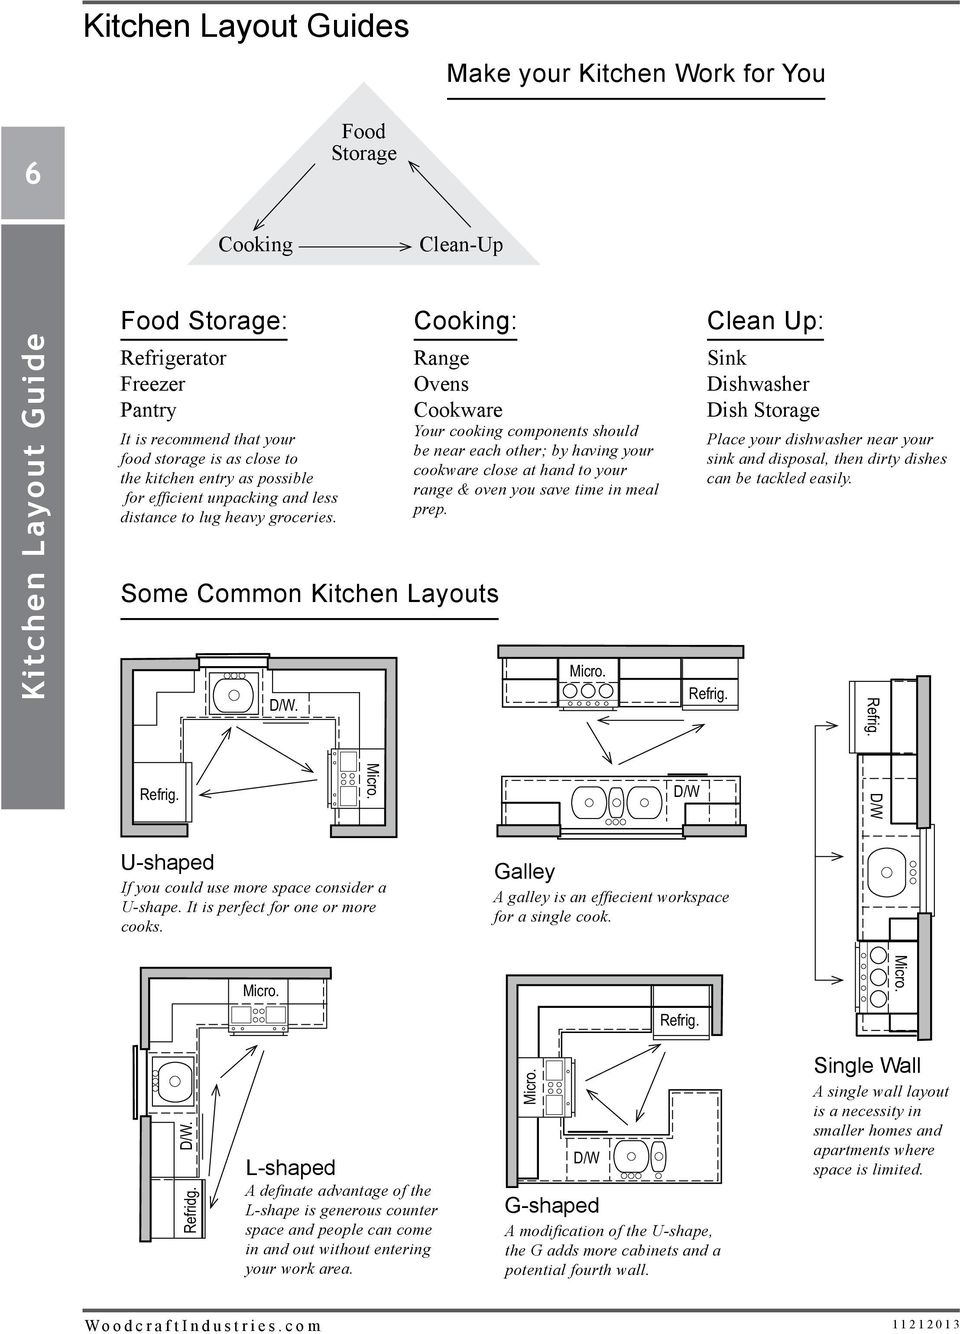 Some Common Kitchen Layouts D/W Refrig. Refrig. Micro. D/W. Micro. D/W Micro. U-shaped If you could use more space consider a U-shape. It is perfect for one or more cooks.